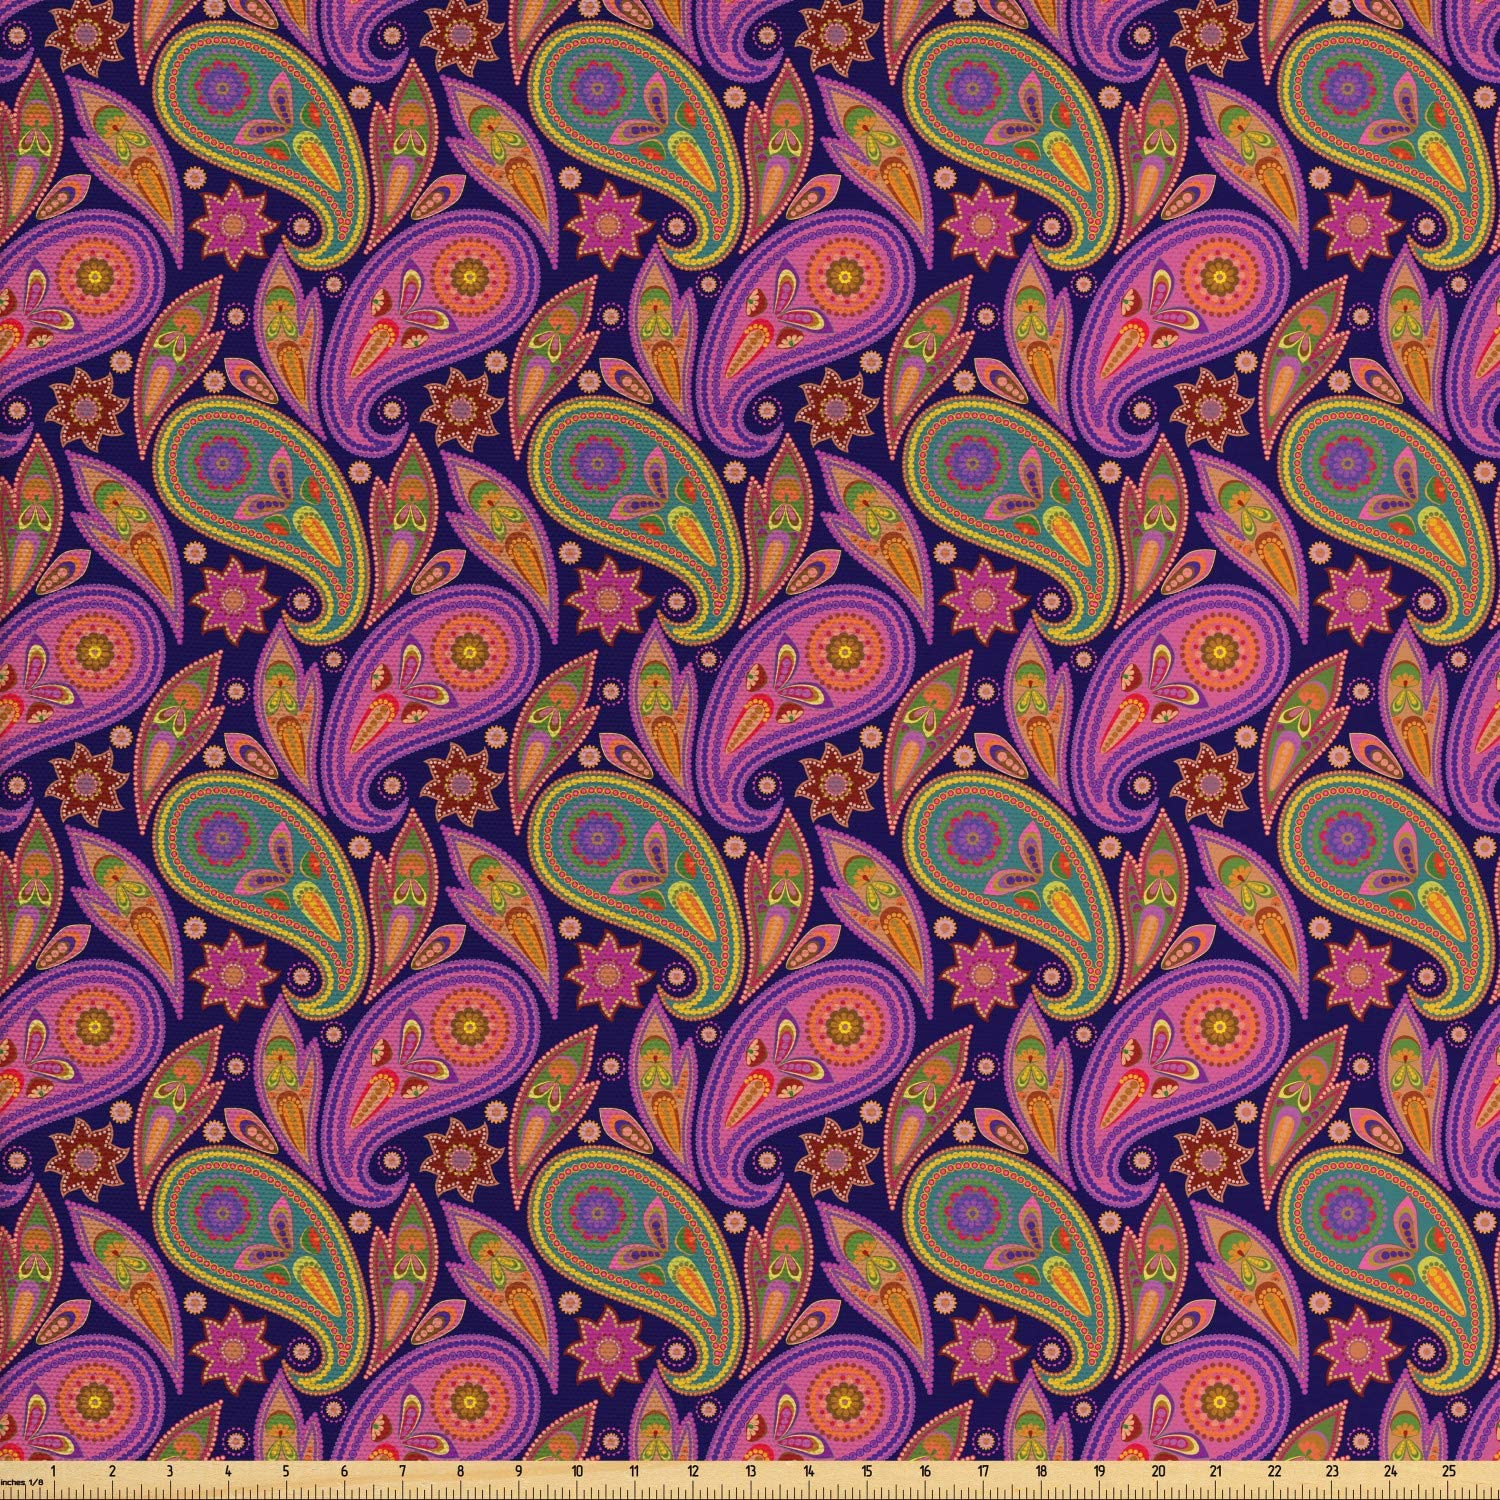 Ambesonne Traditional Fabric by The Yard, Paisley Pattern with Flowers and Leaves Colorful Dots Ethnic Art, Decorative Fabric for Upholstery and Home Accents, 1 Yard, Dark Purple Multicolor